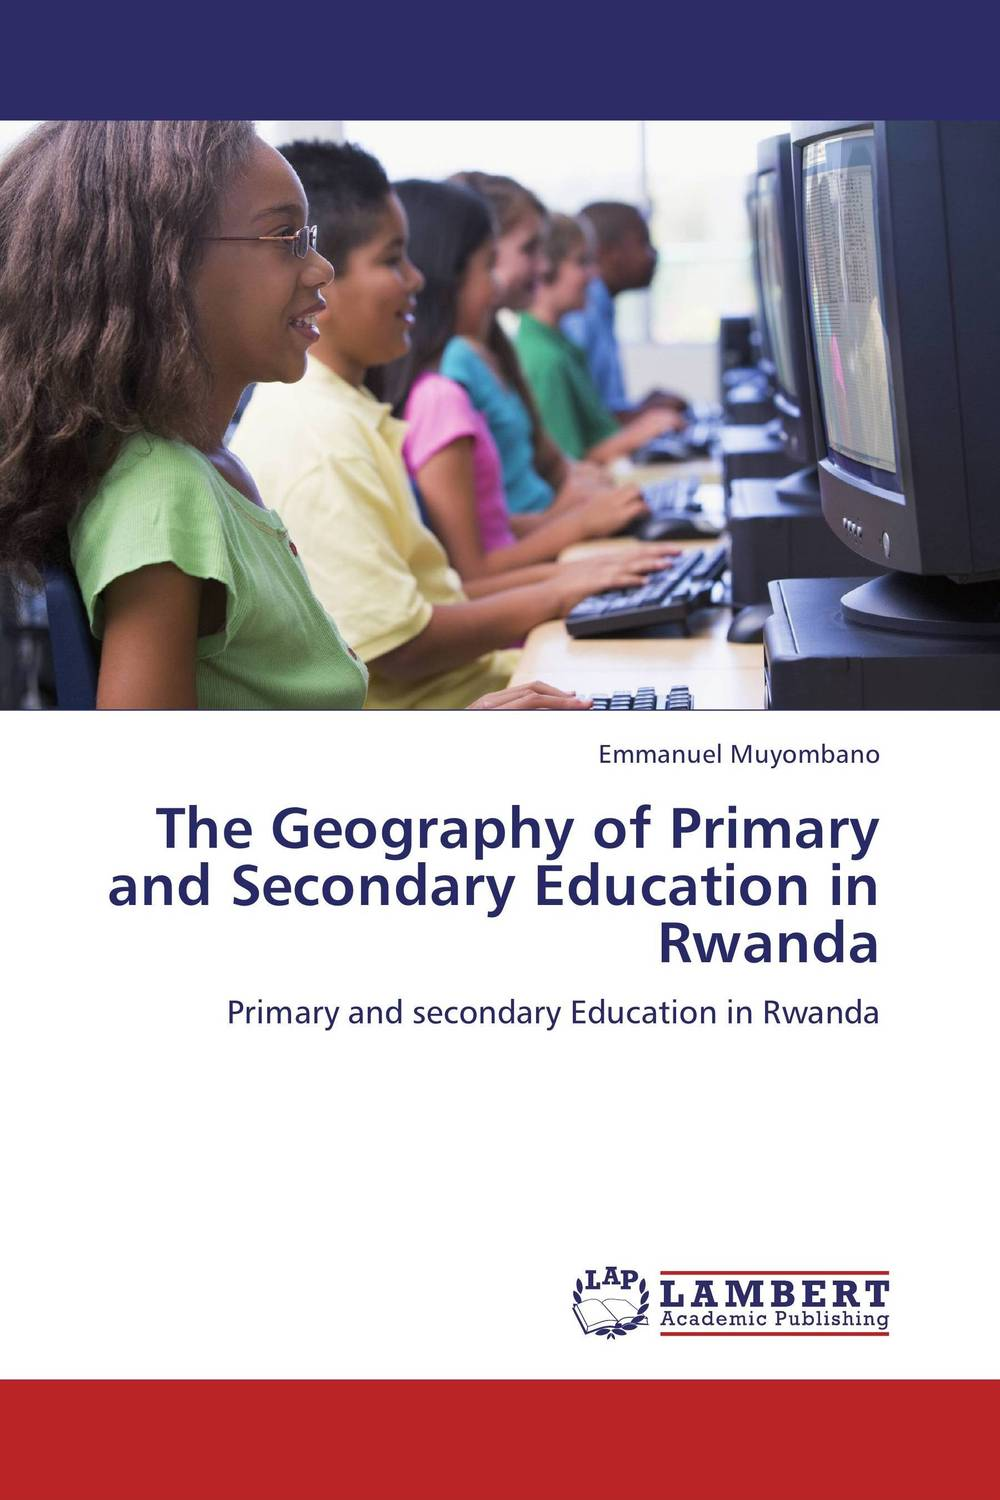 купить The Geography of Primary and Secondary Education in Rwanda недорого